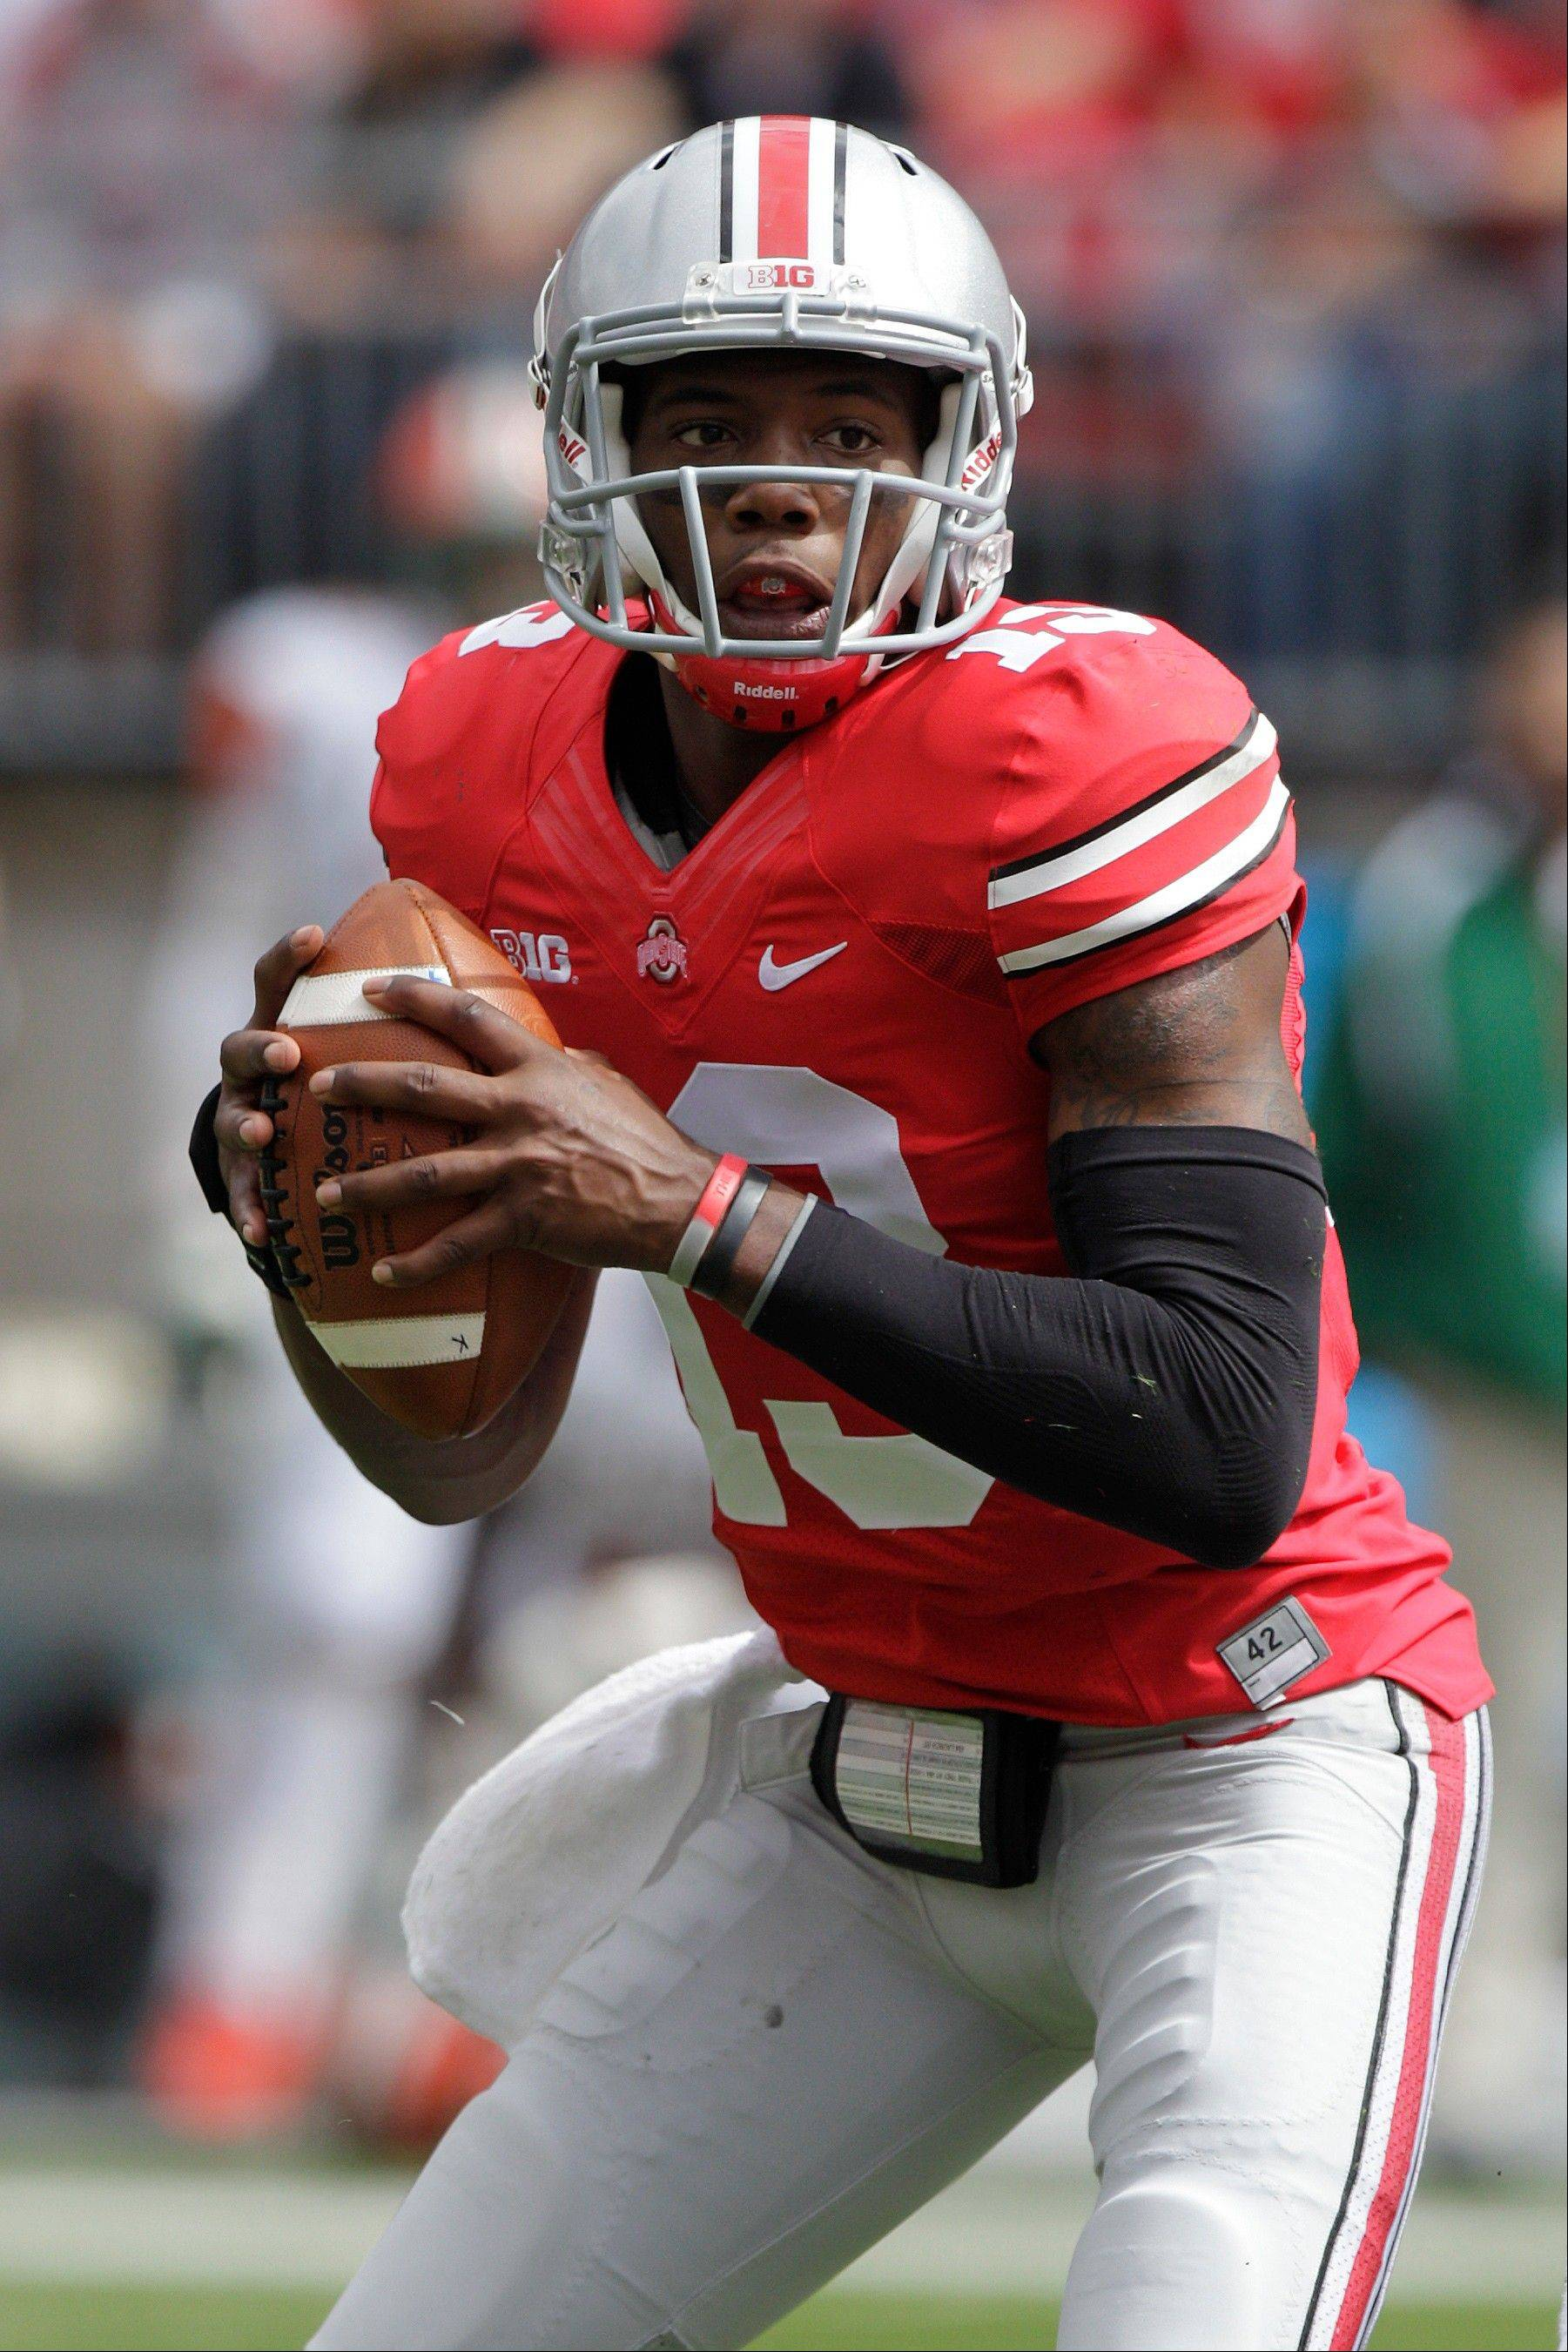 Ohio State quarterback Kenny Guiton looks for a receiver against Florida A&M during last weekend's game in Columbus, Ohio. Guiton is coming off three terrific games with Braxton Miller out.